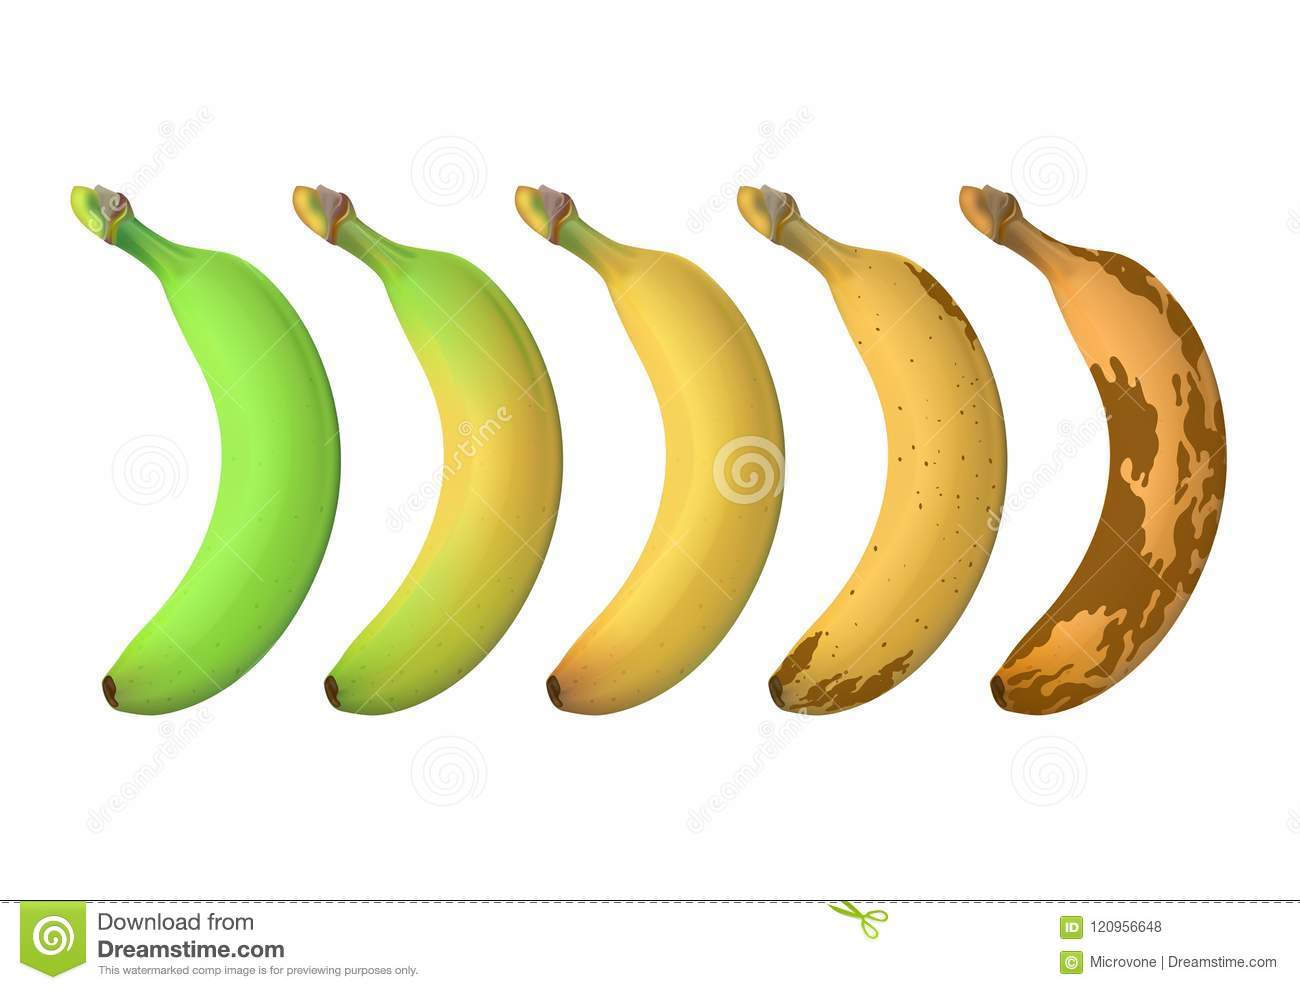 Banana fruit ripeness levels from green underripe to brown rotten. Vector set isolated on white background